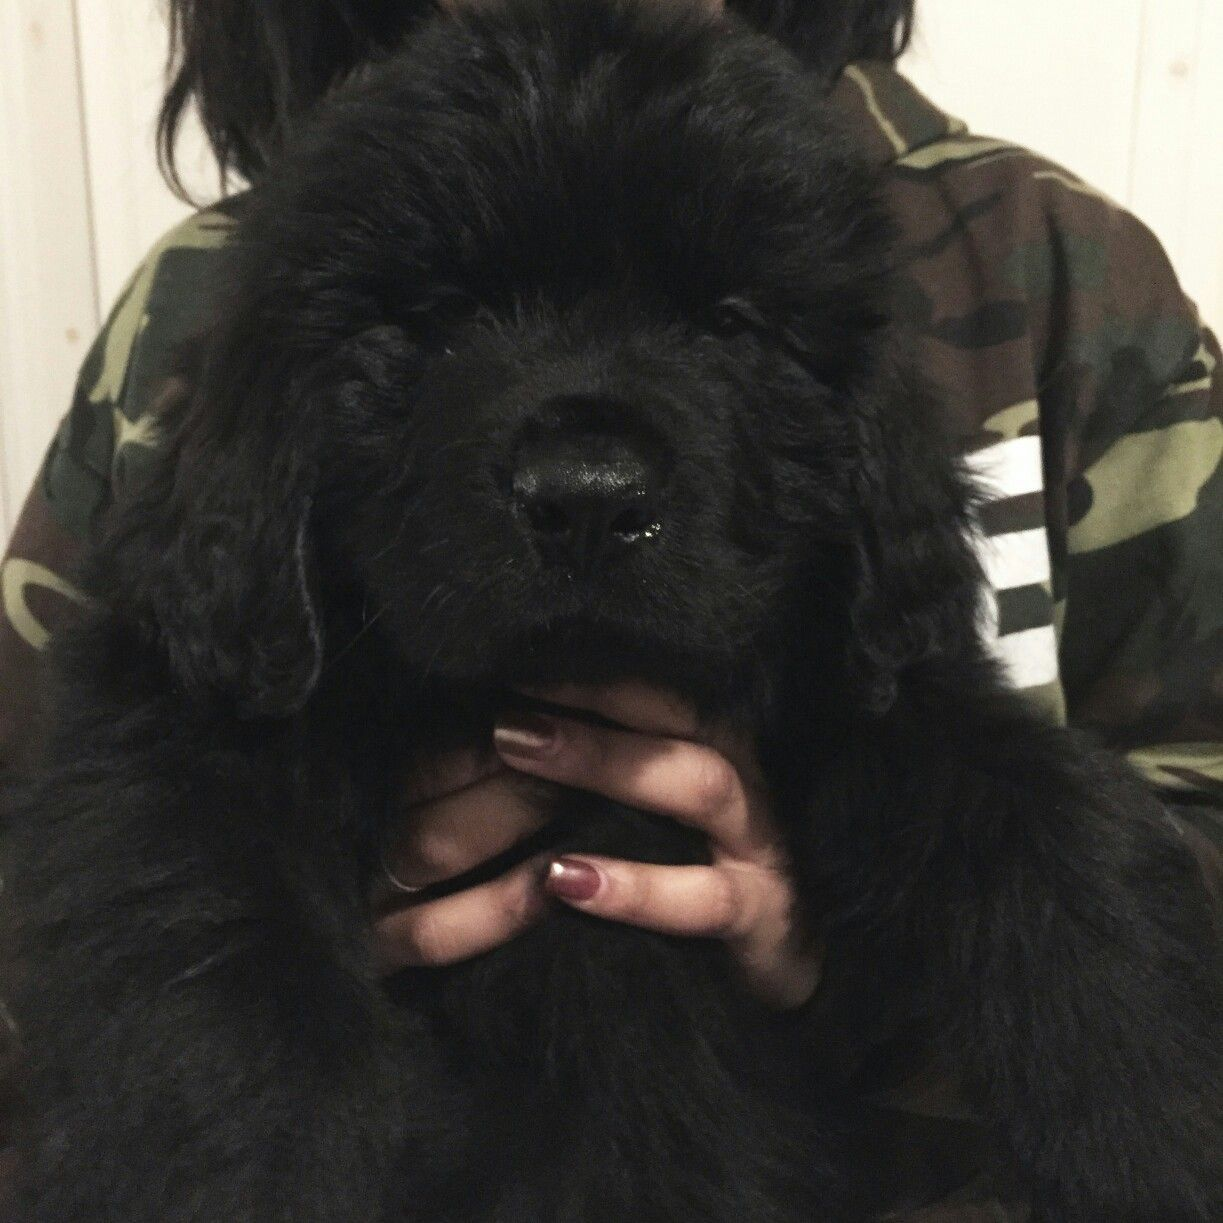 Remi When He Was 2 Months Old Newfoundland Newfoundlanddog Newfoundland Dog Dog Breeds Dogs